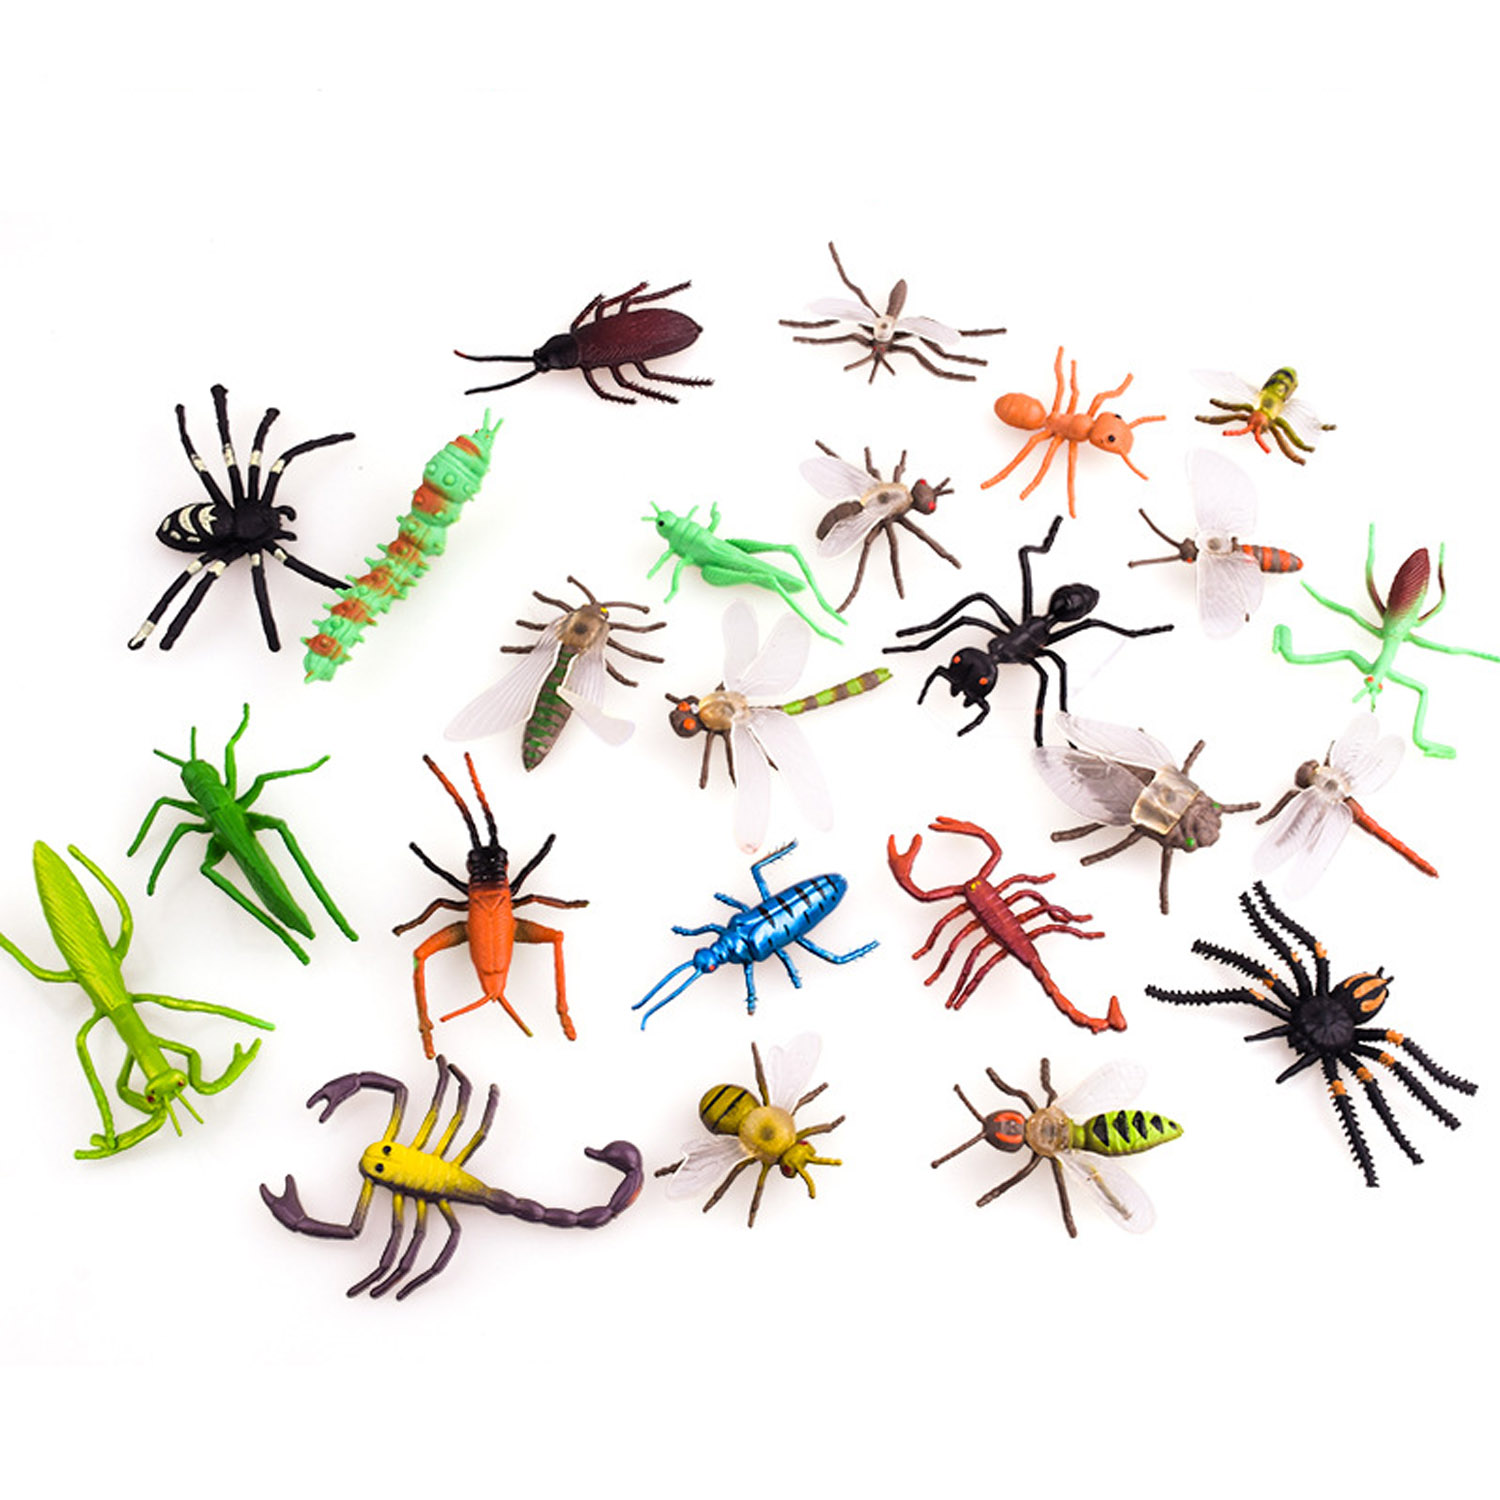 12PCS Simulation Plastic PVC Mini Insect Animals Models Spider Cockroach Beetle Grasshopper Dragonfly Ant Mantis Educational Toy